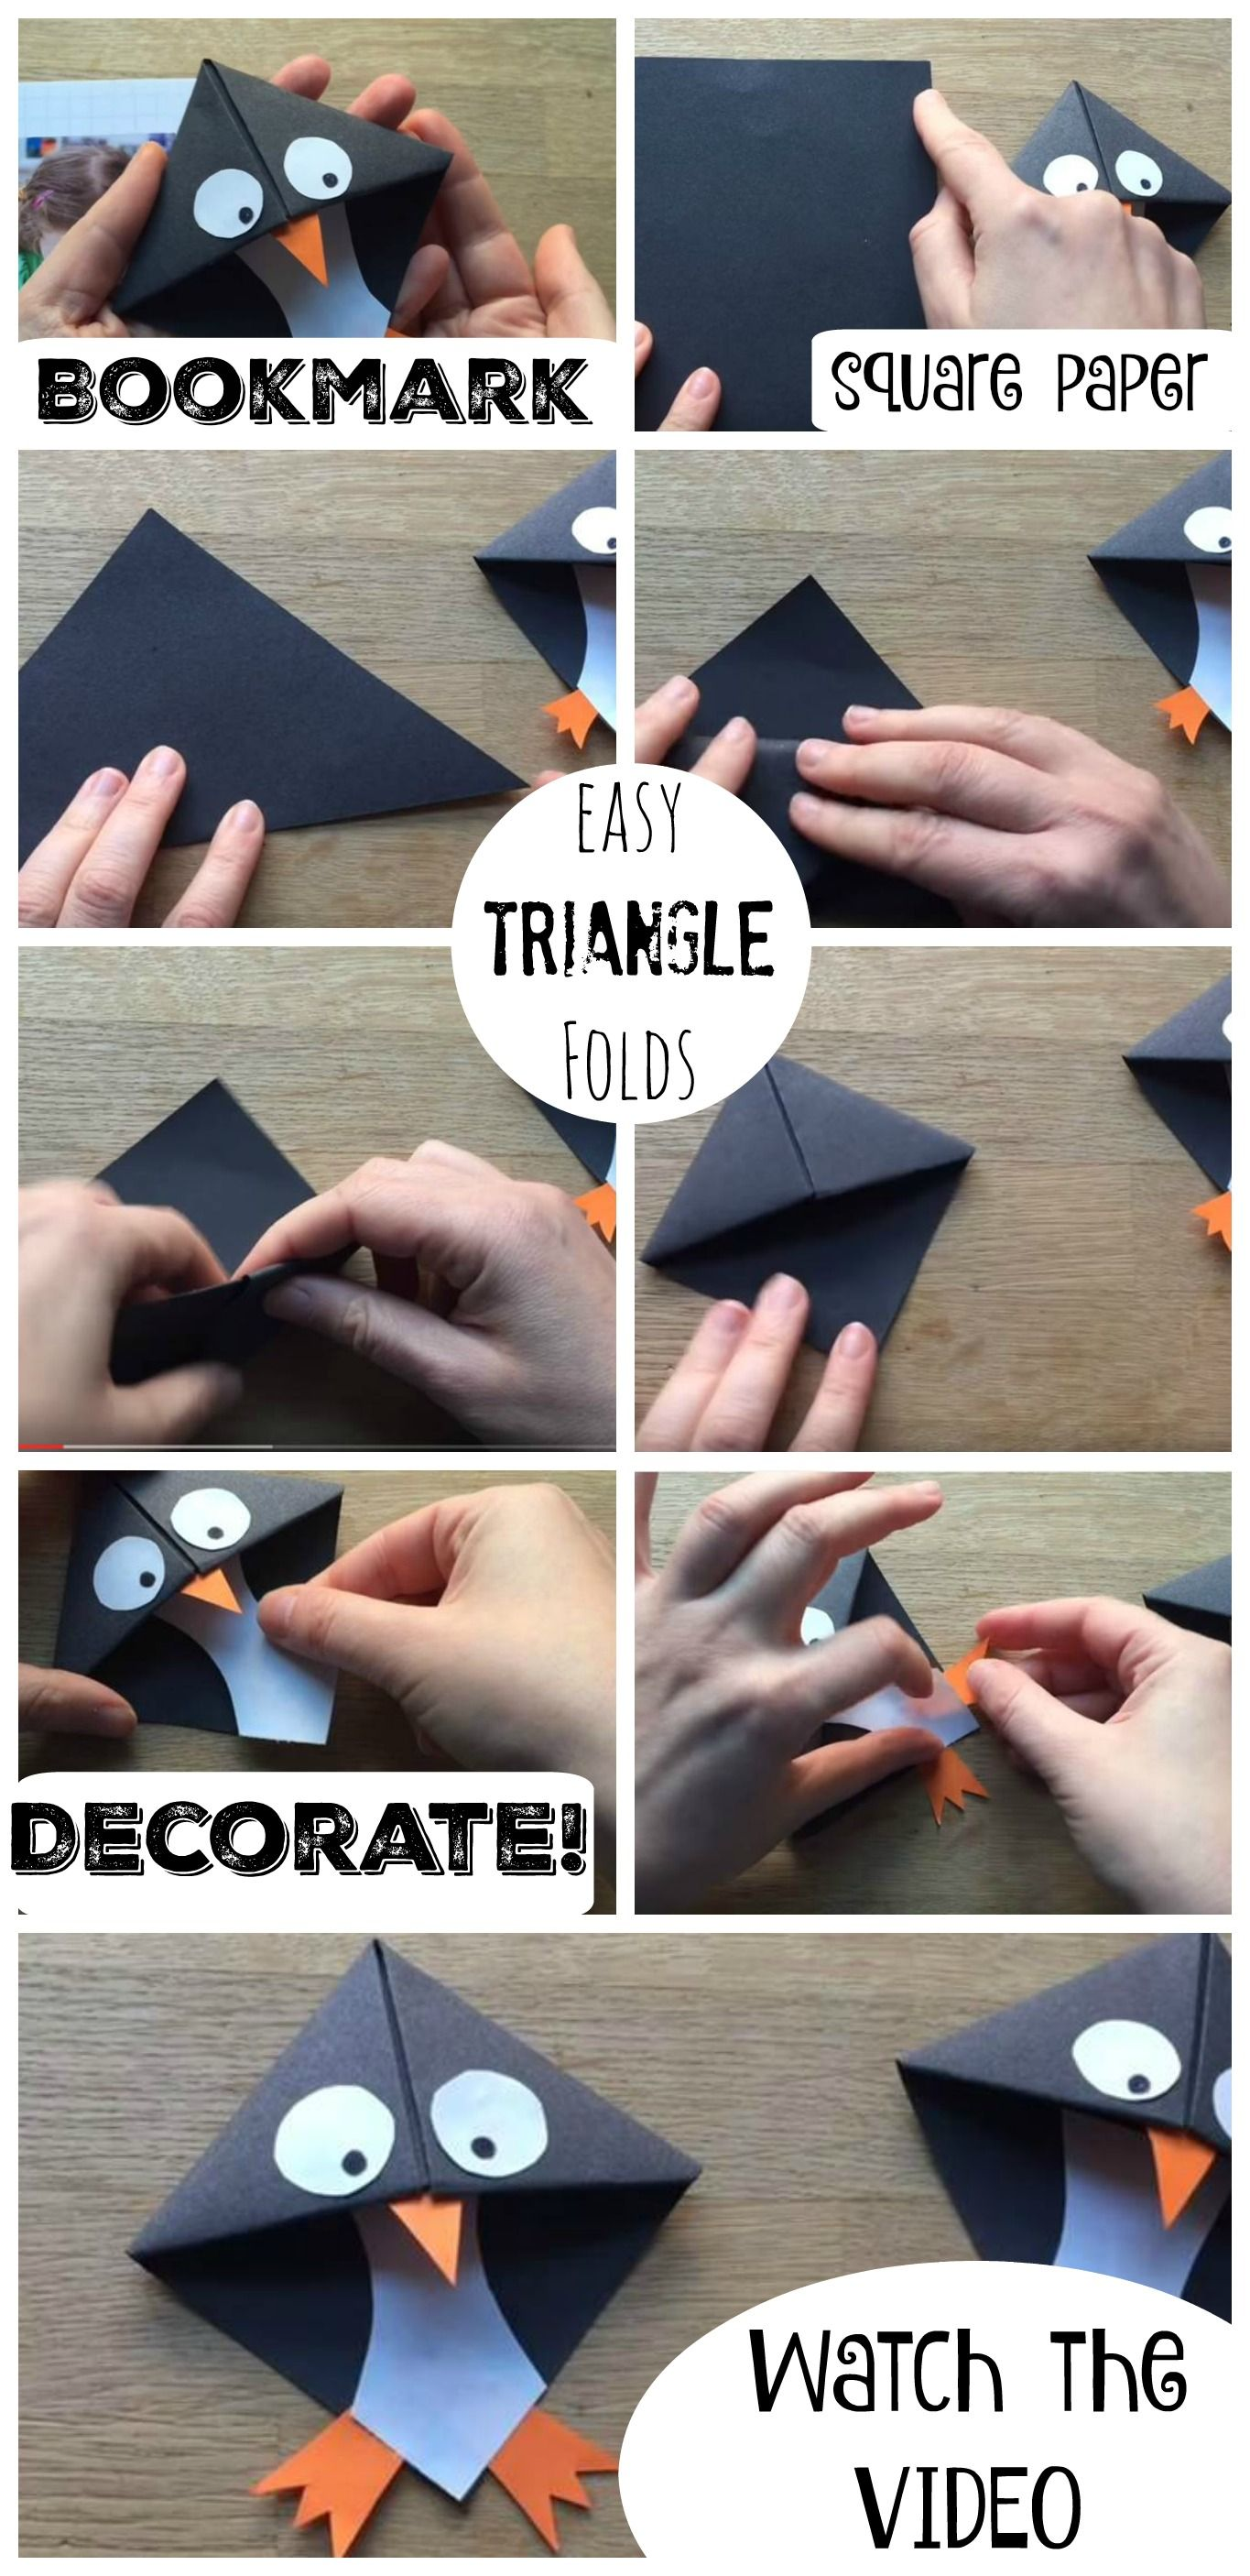 Super Cute Penguin Bookmarks These Are Fun And EASY To Make A Great Introduction Origami For Kids Nice Gift